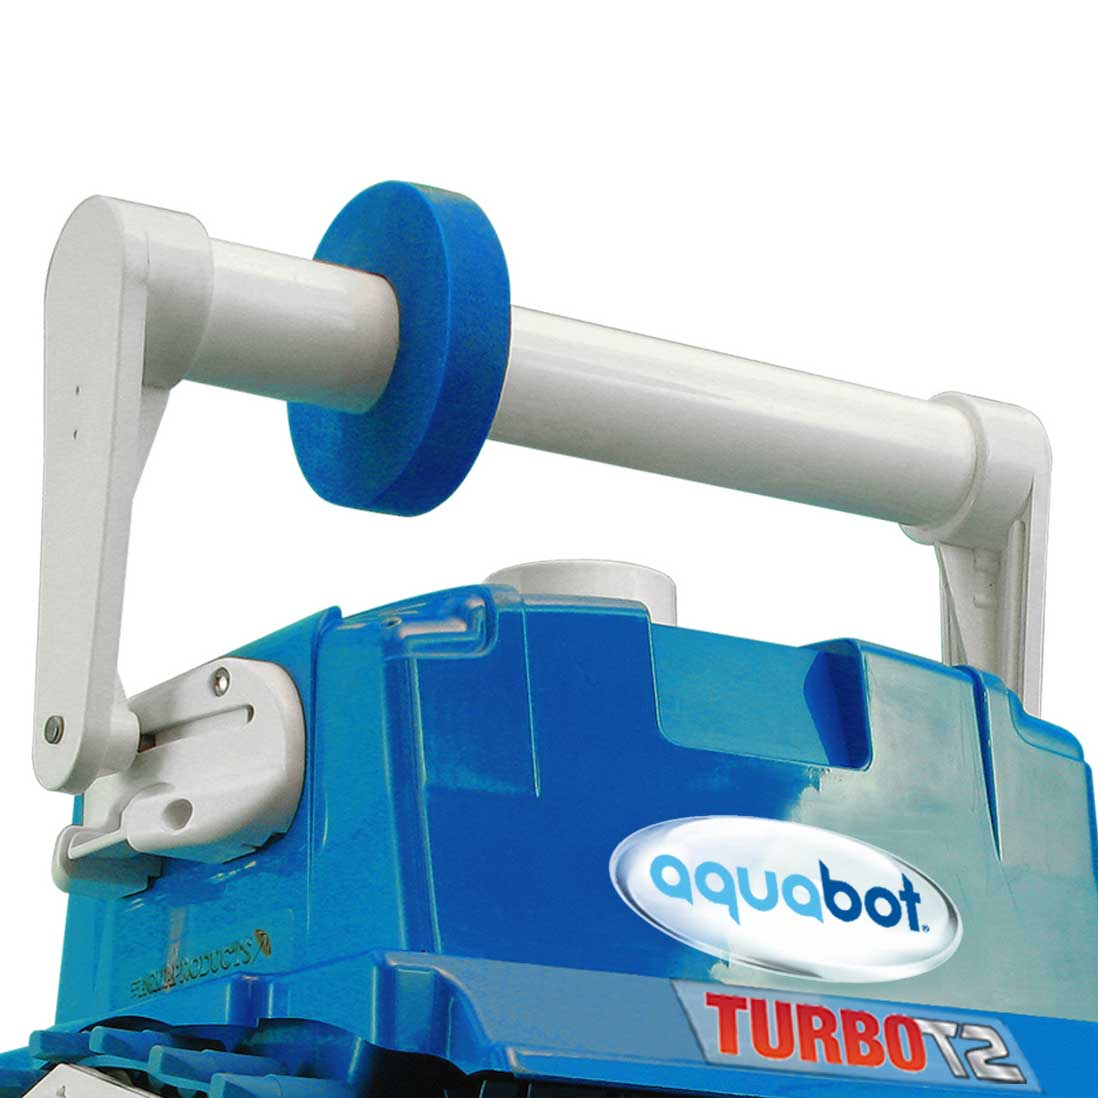 Aquabot Turbo T2 Abturt2 In Ground Automatic Robotic Swimming Pool Cleaner Ebay